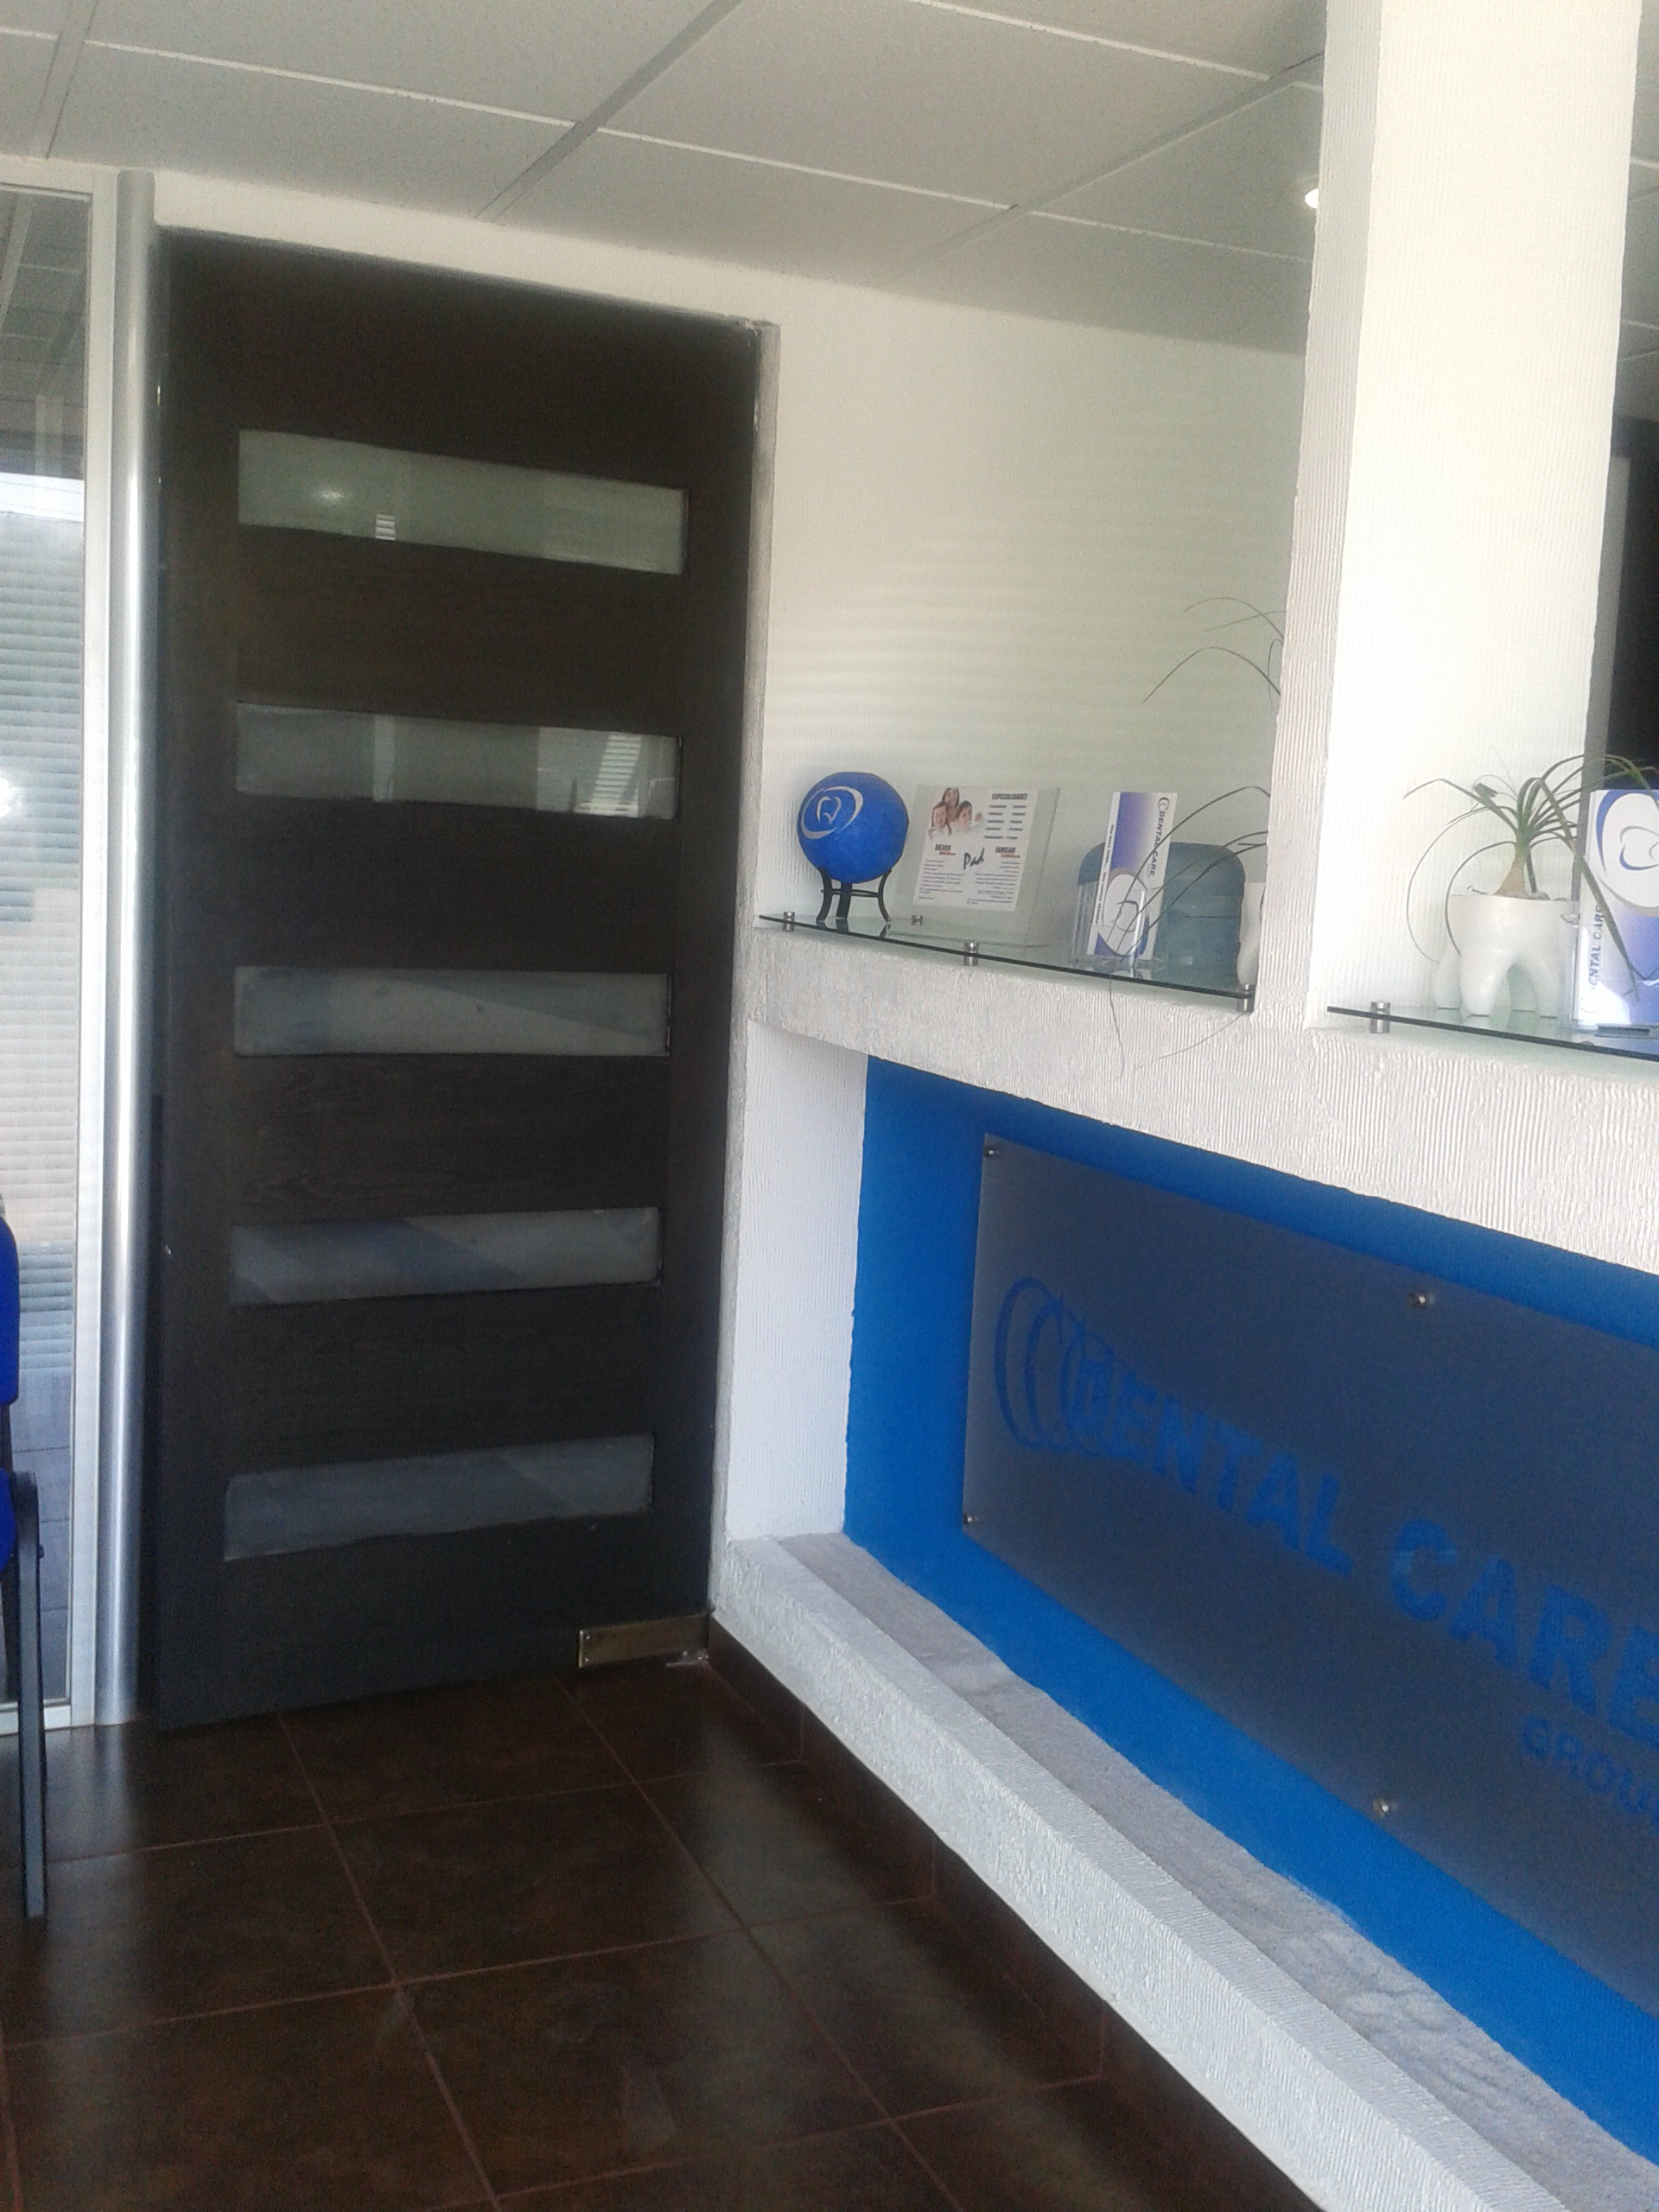 C Dental Care - Queretaro